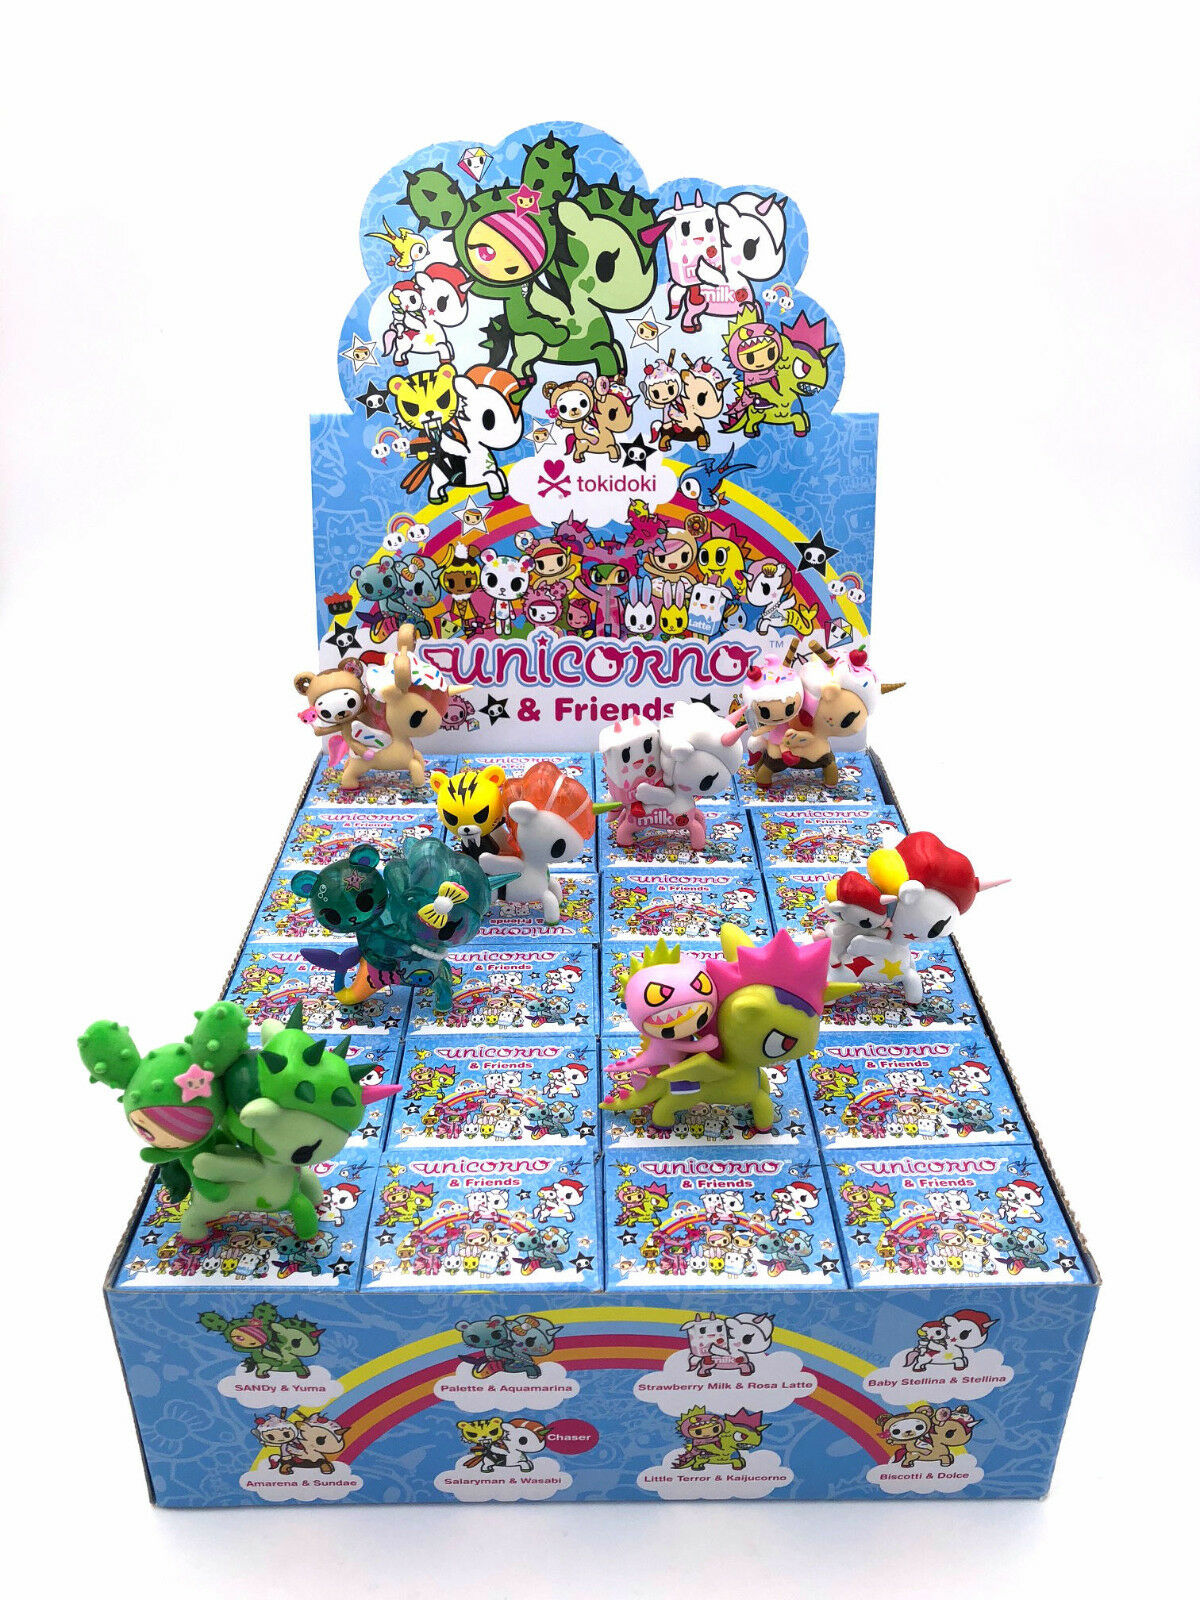 FULL CASE OF 24 UNICORNO AND FRIENDS SERIES BLIND BOX MINI FIGURES BY TOKIDOKI